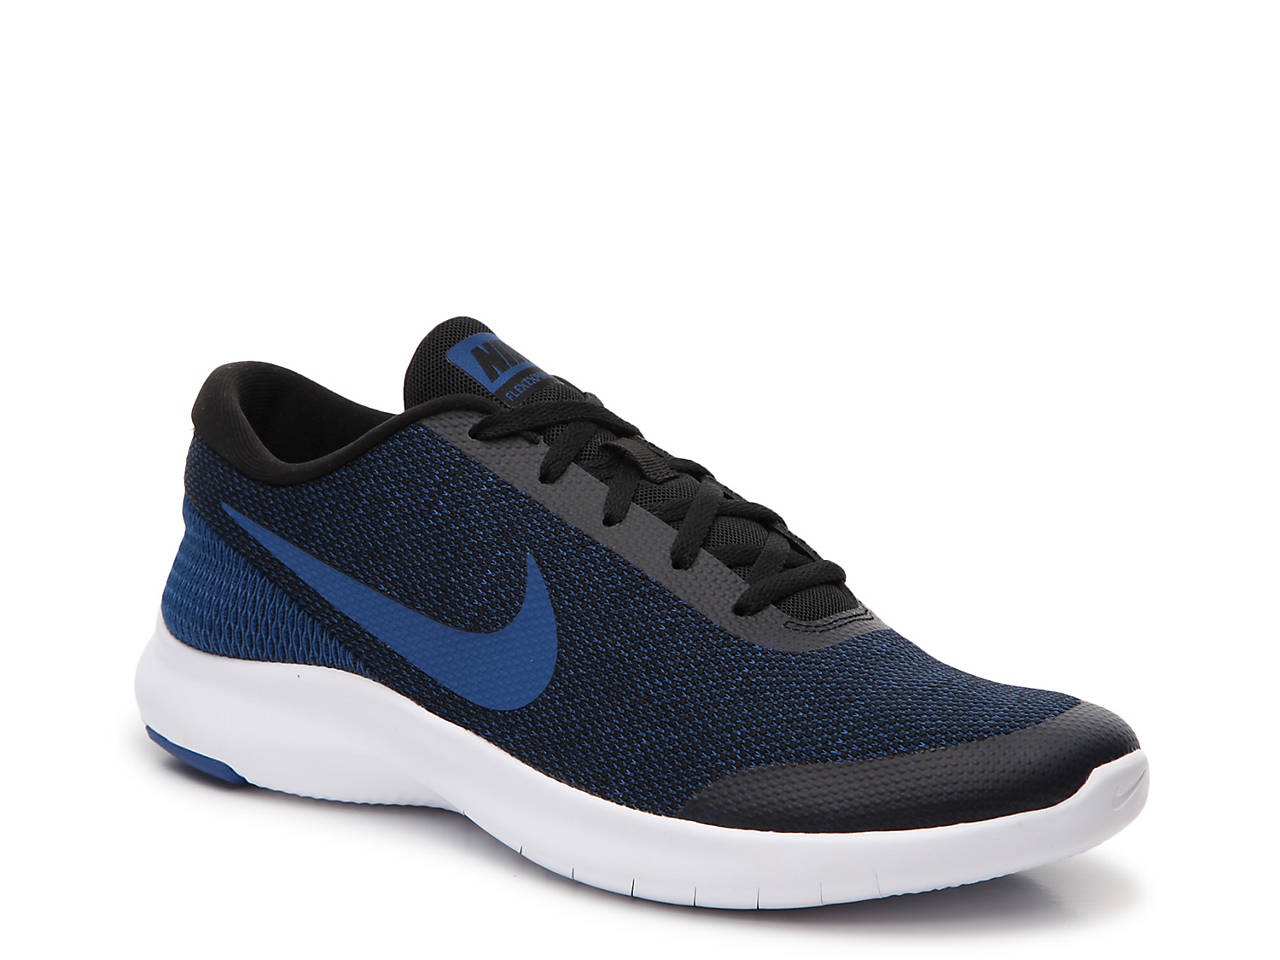 f41384a4628 Nike Flex Experience Run 7 Lightweight Running Shoe - Men s Men s ...